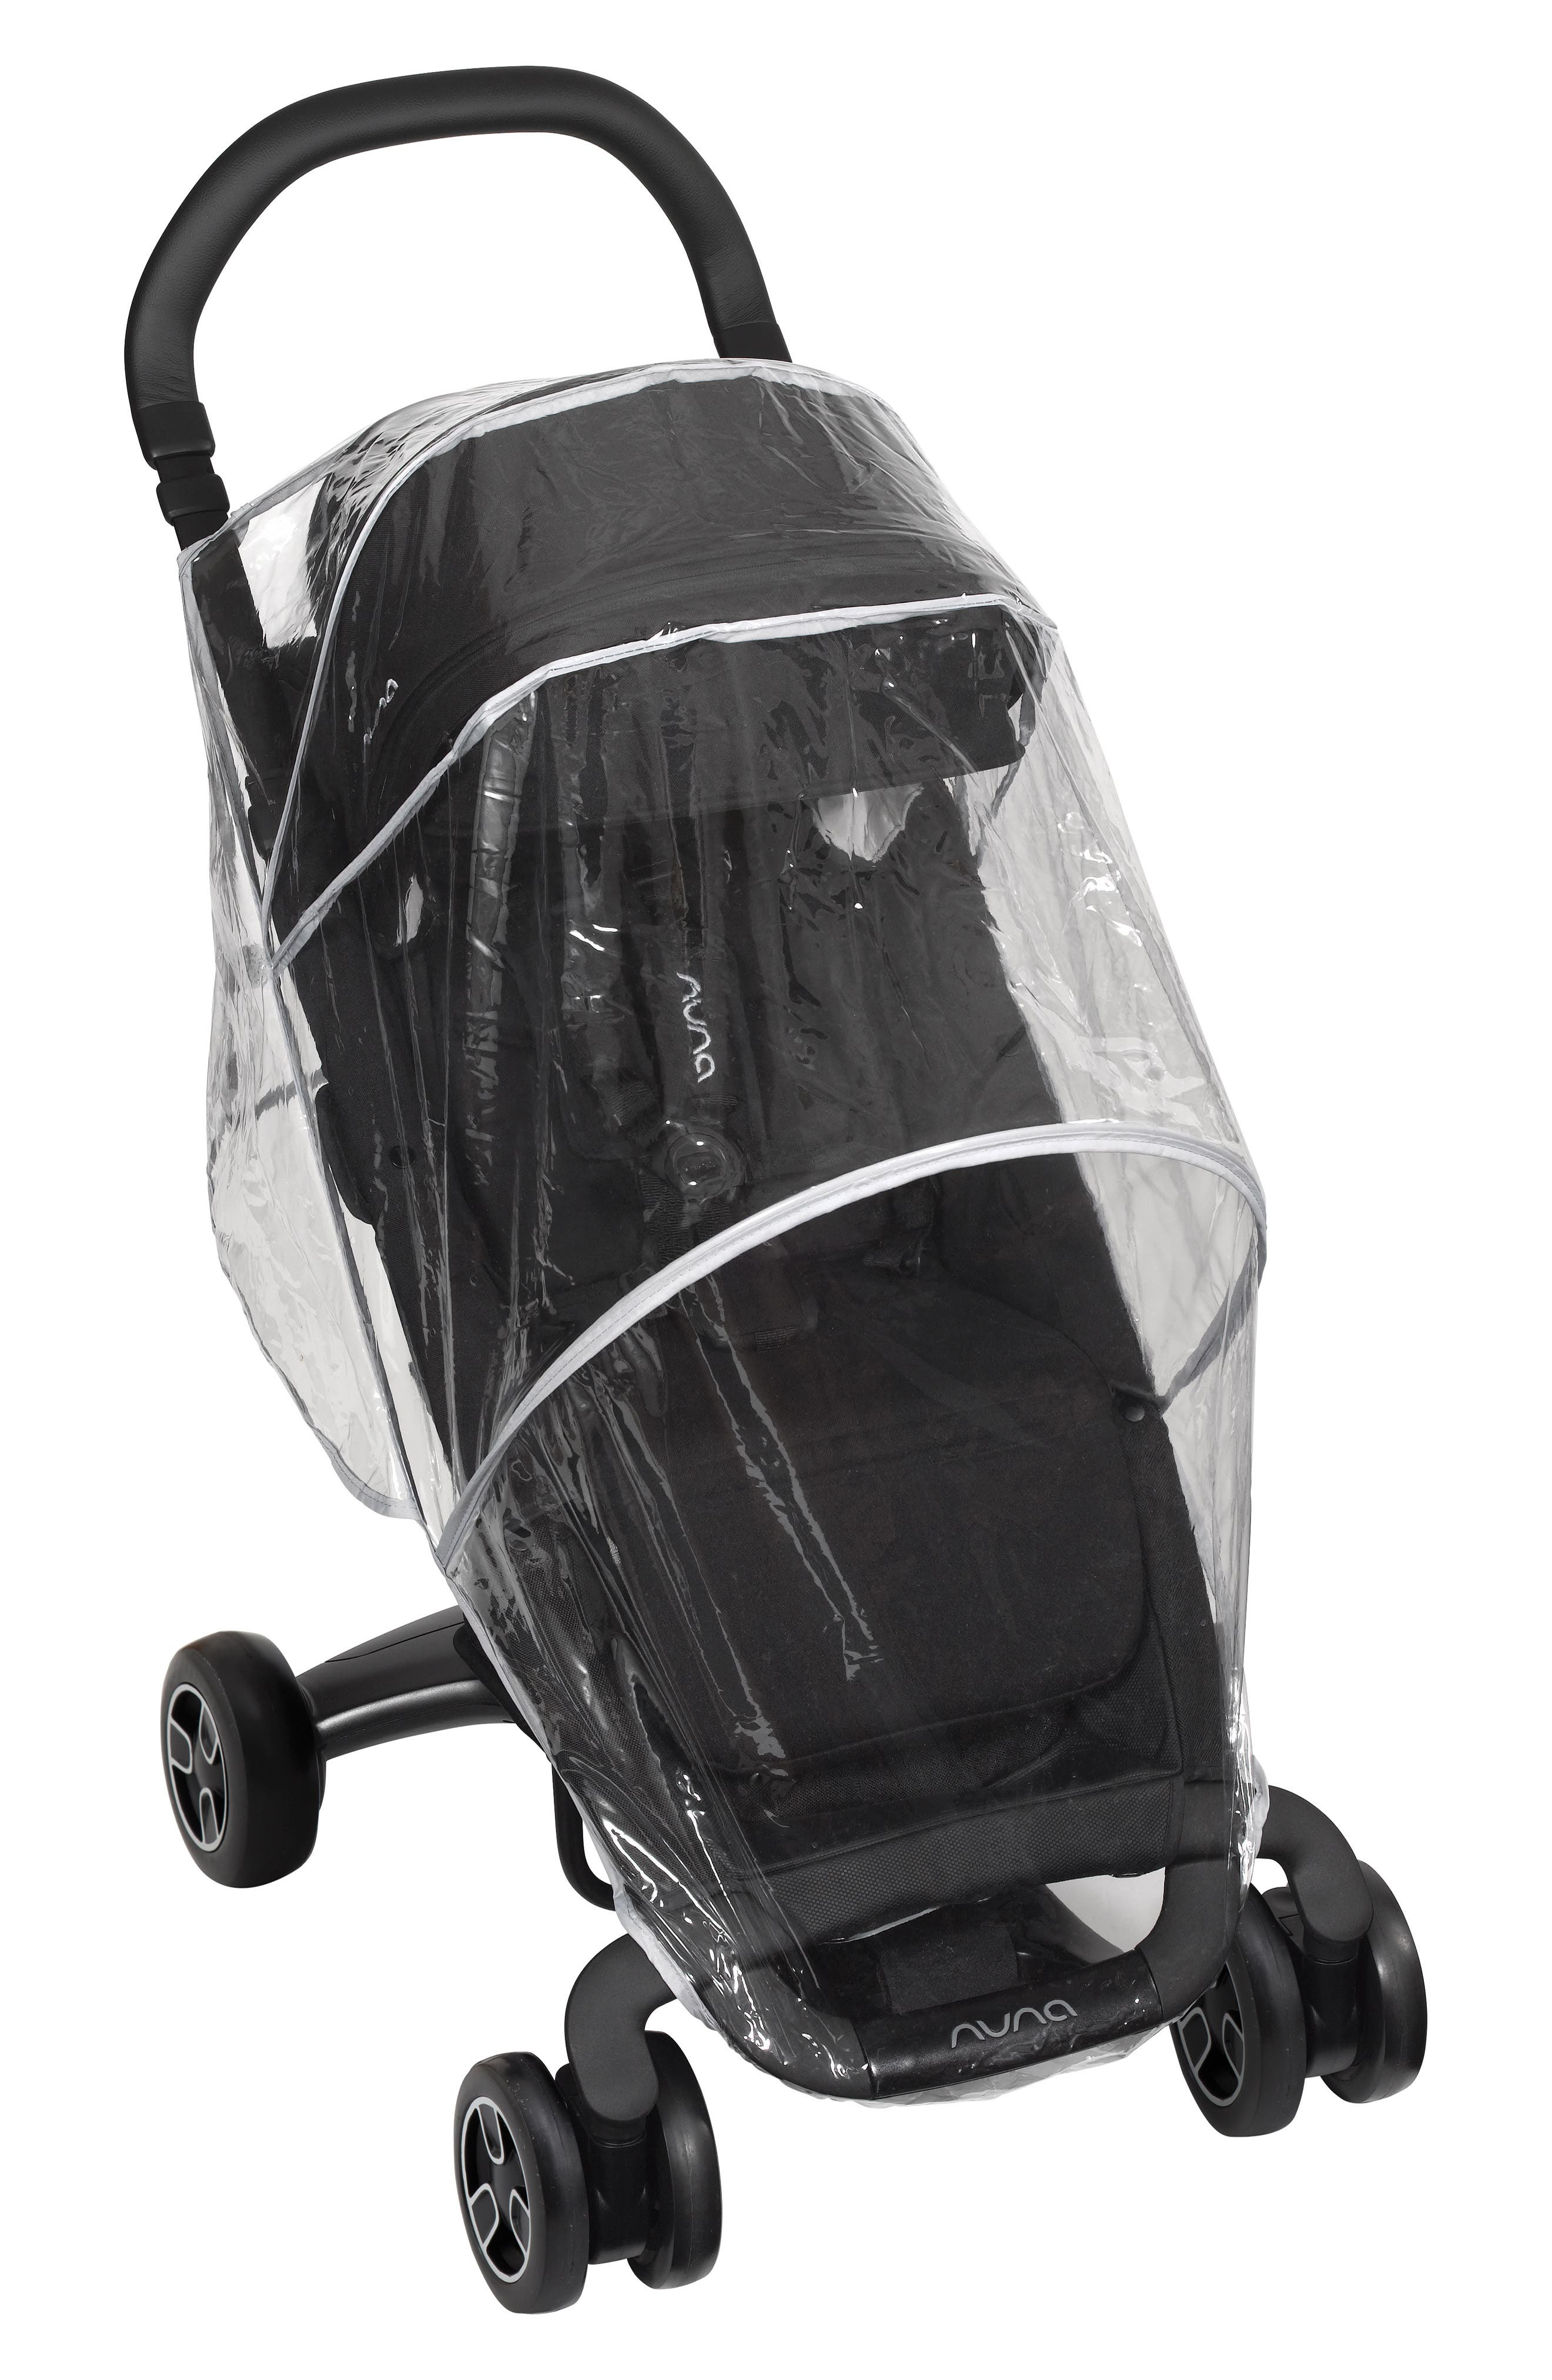 PEPP<sup>™</sup> Next Stroller,                             Alternate thumbnail 10, color,                             CAVIAR